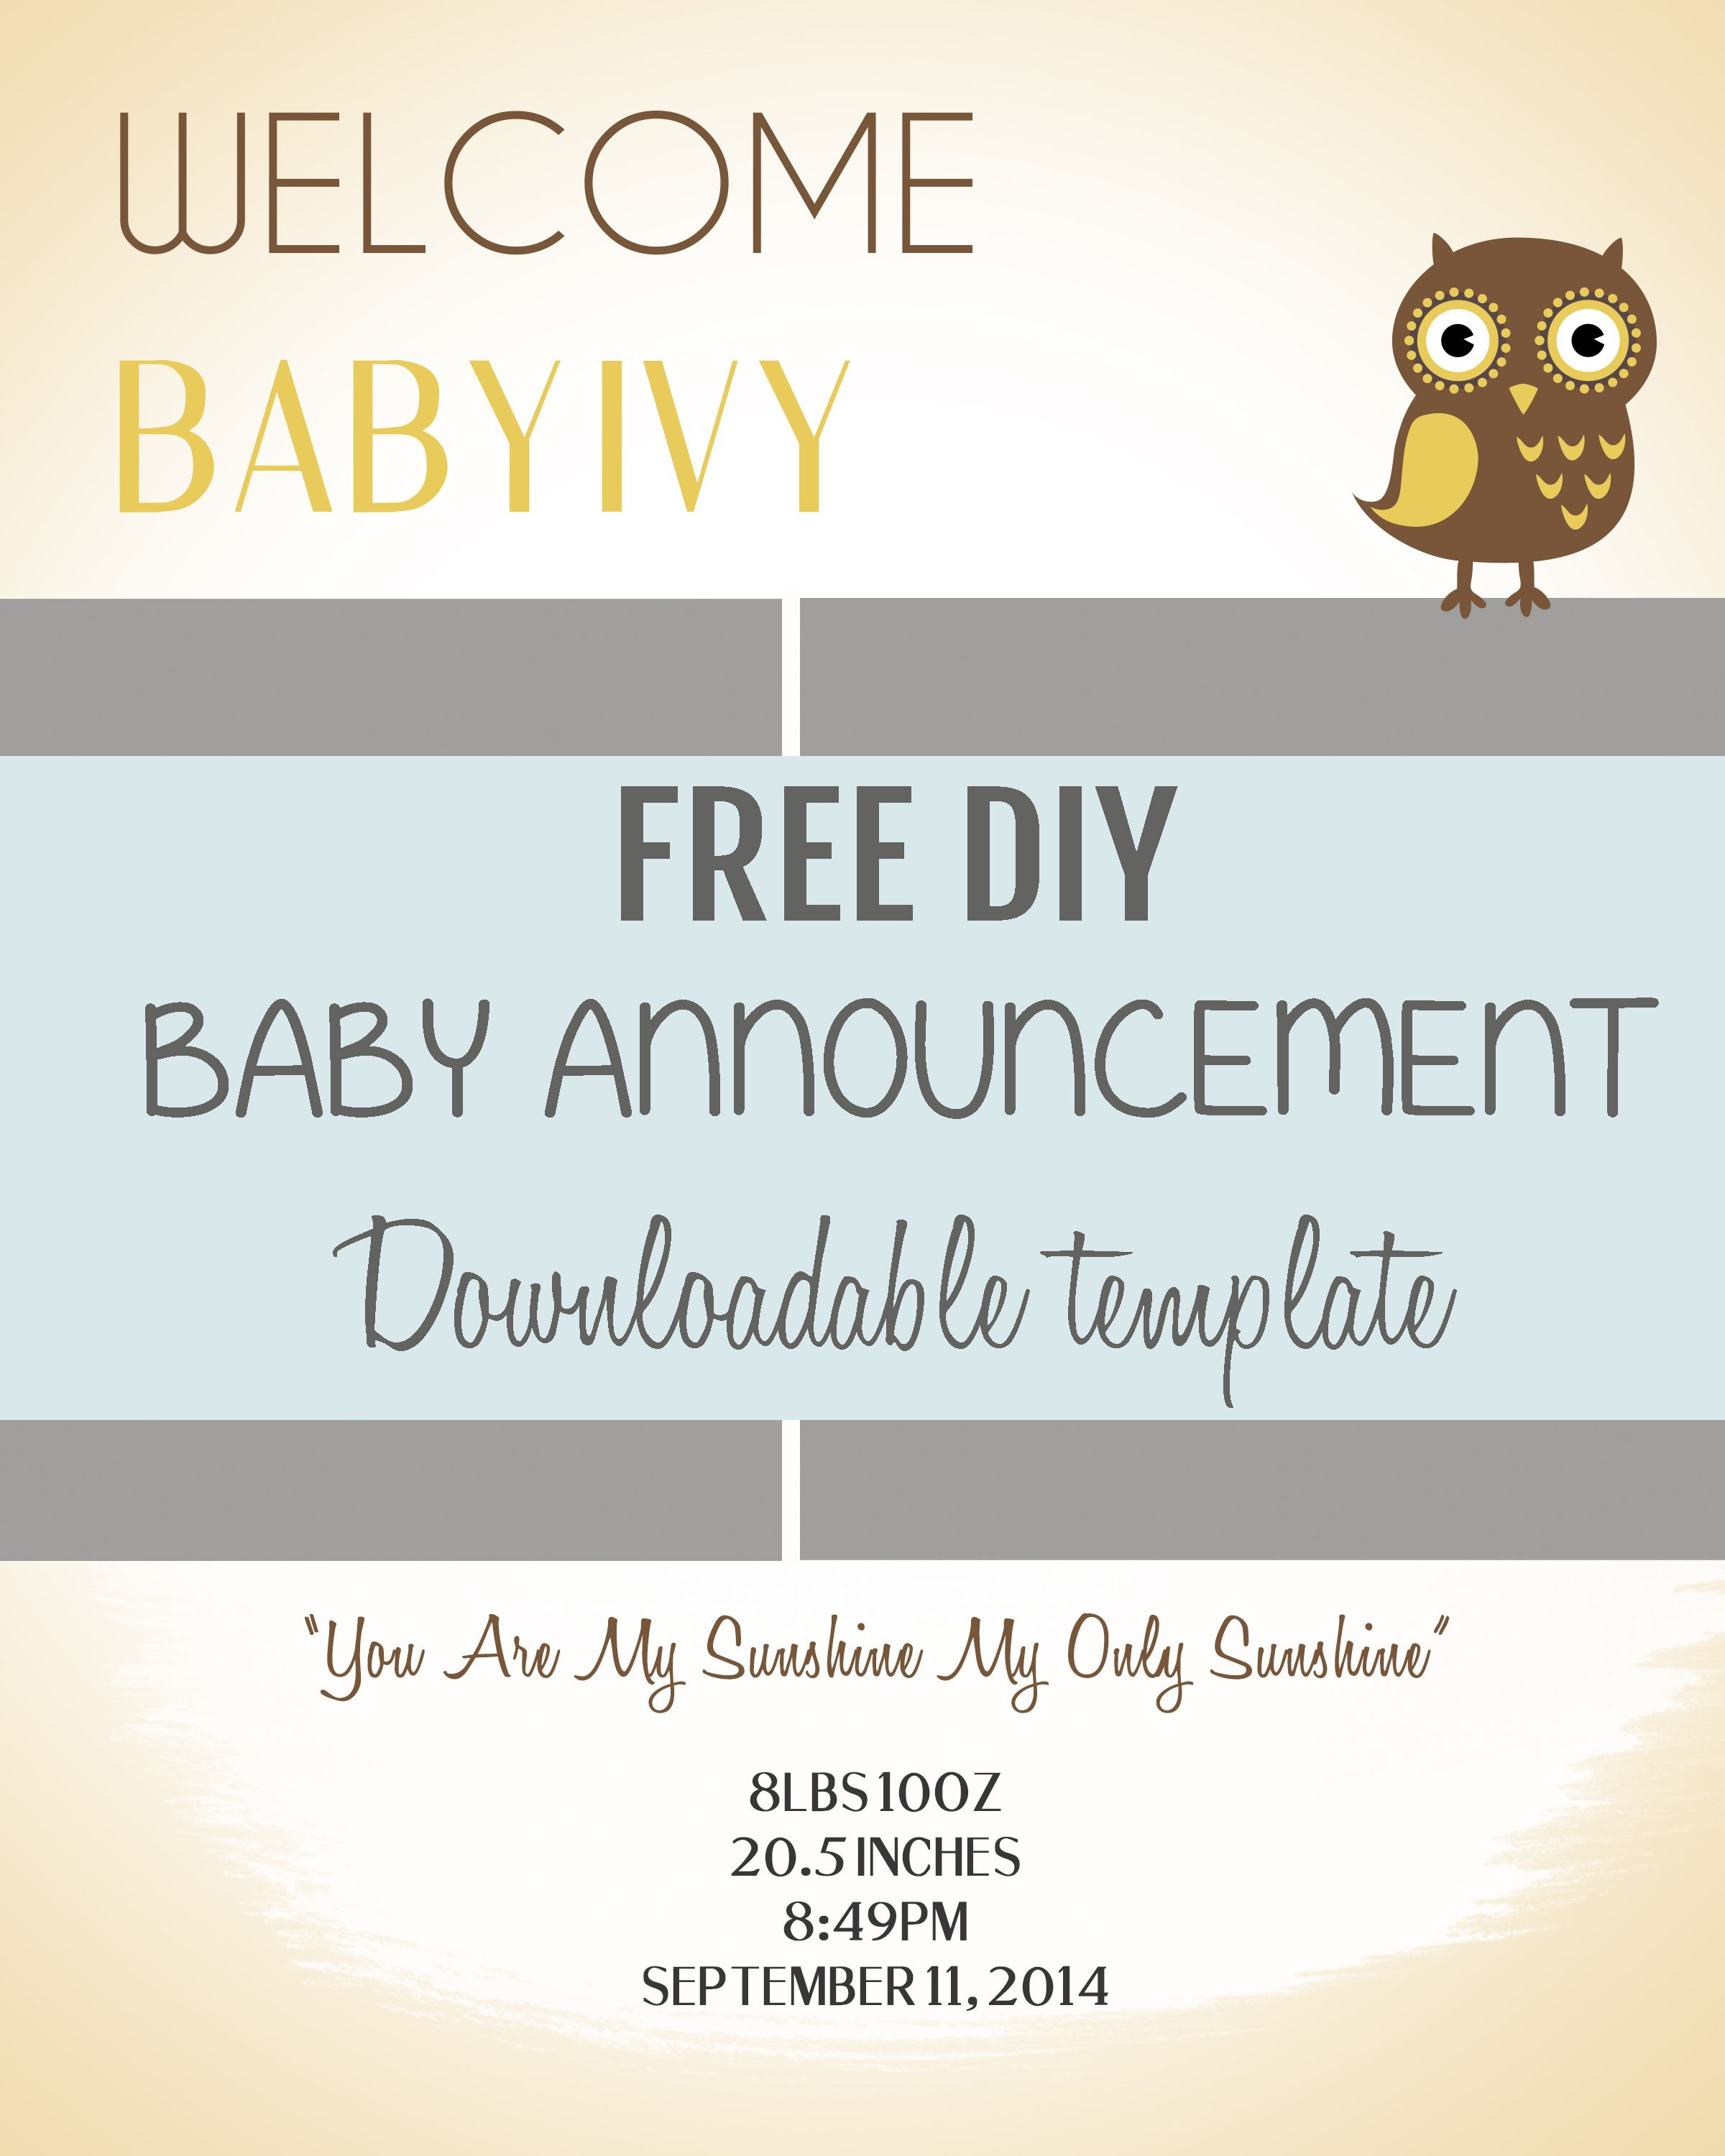 001 Free Birth Announcements Templates Template Ideas ~ Ulyssesroom - Free Birth Announcements Printable